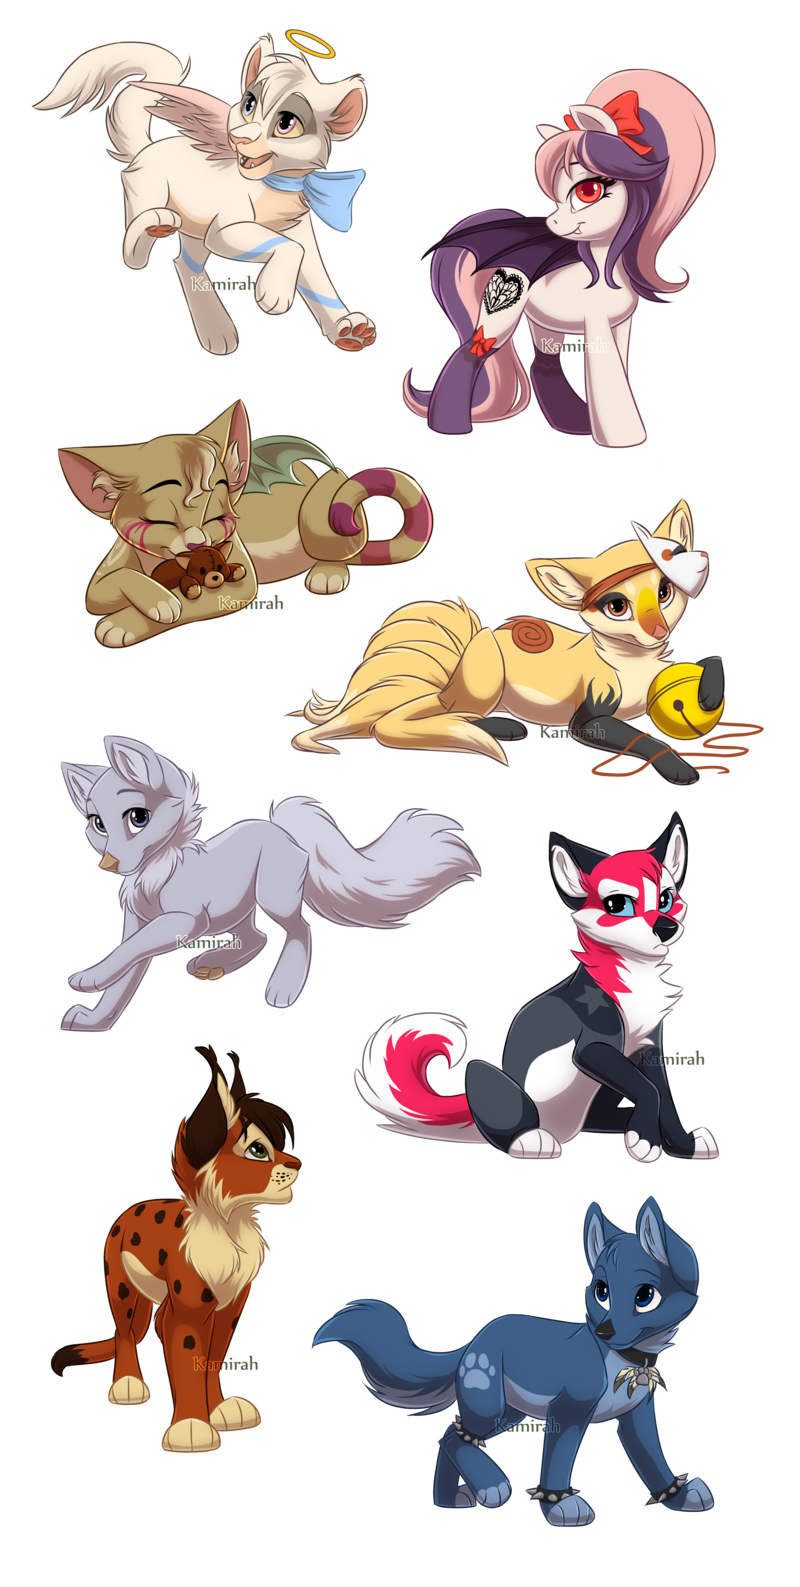 3,4,5 & 8 is mine adopt the rest Plz but if u want 1of